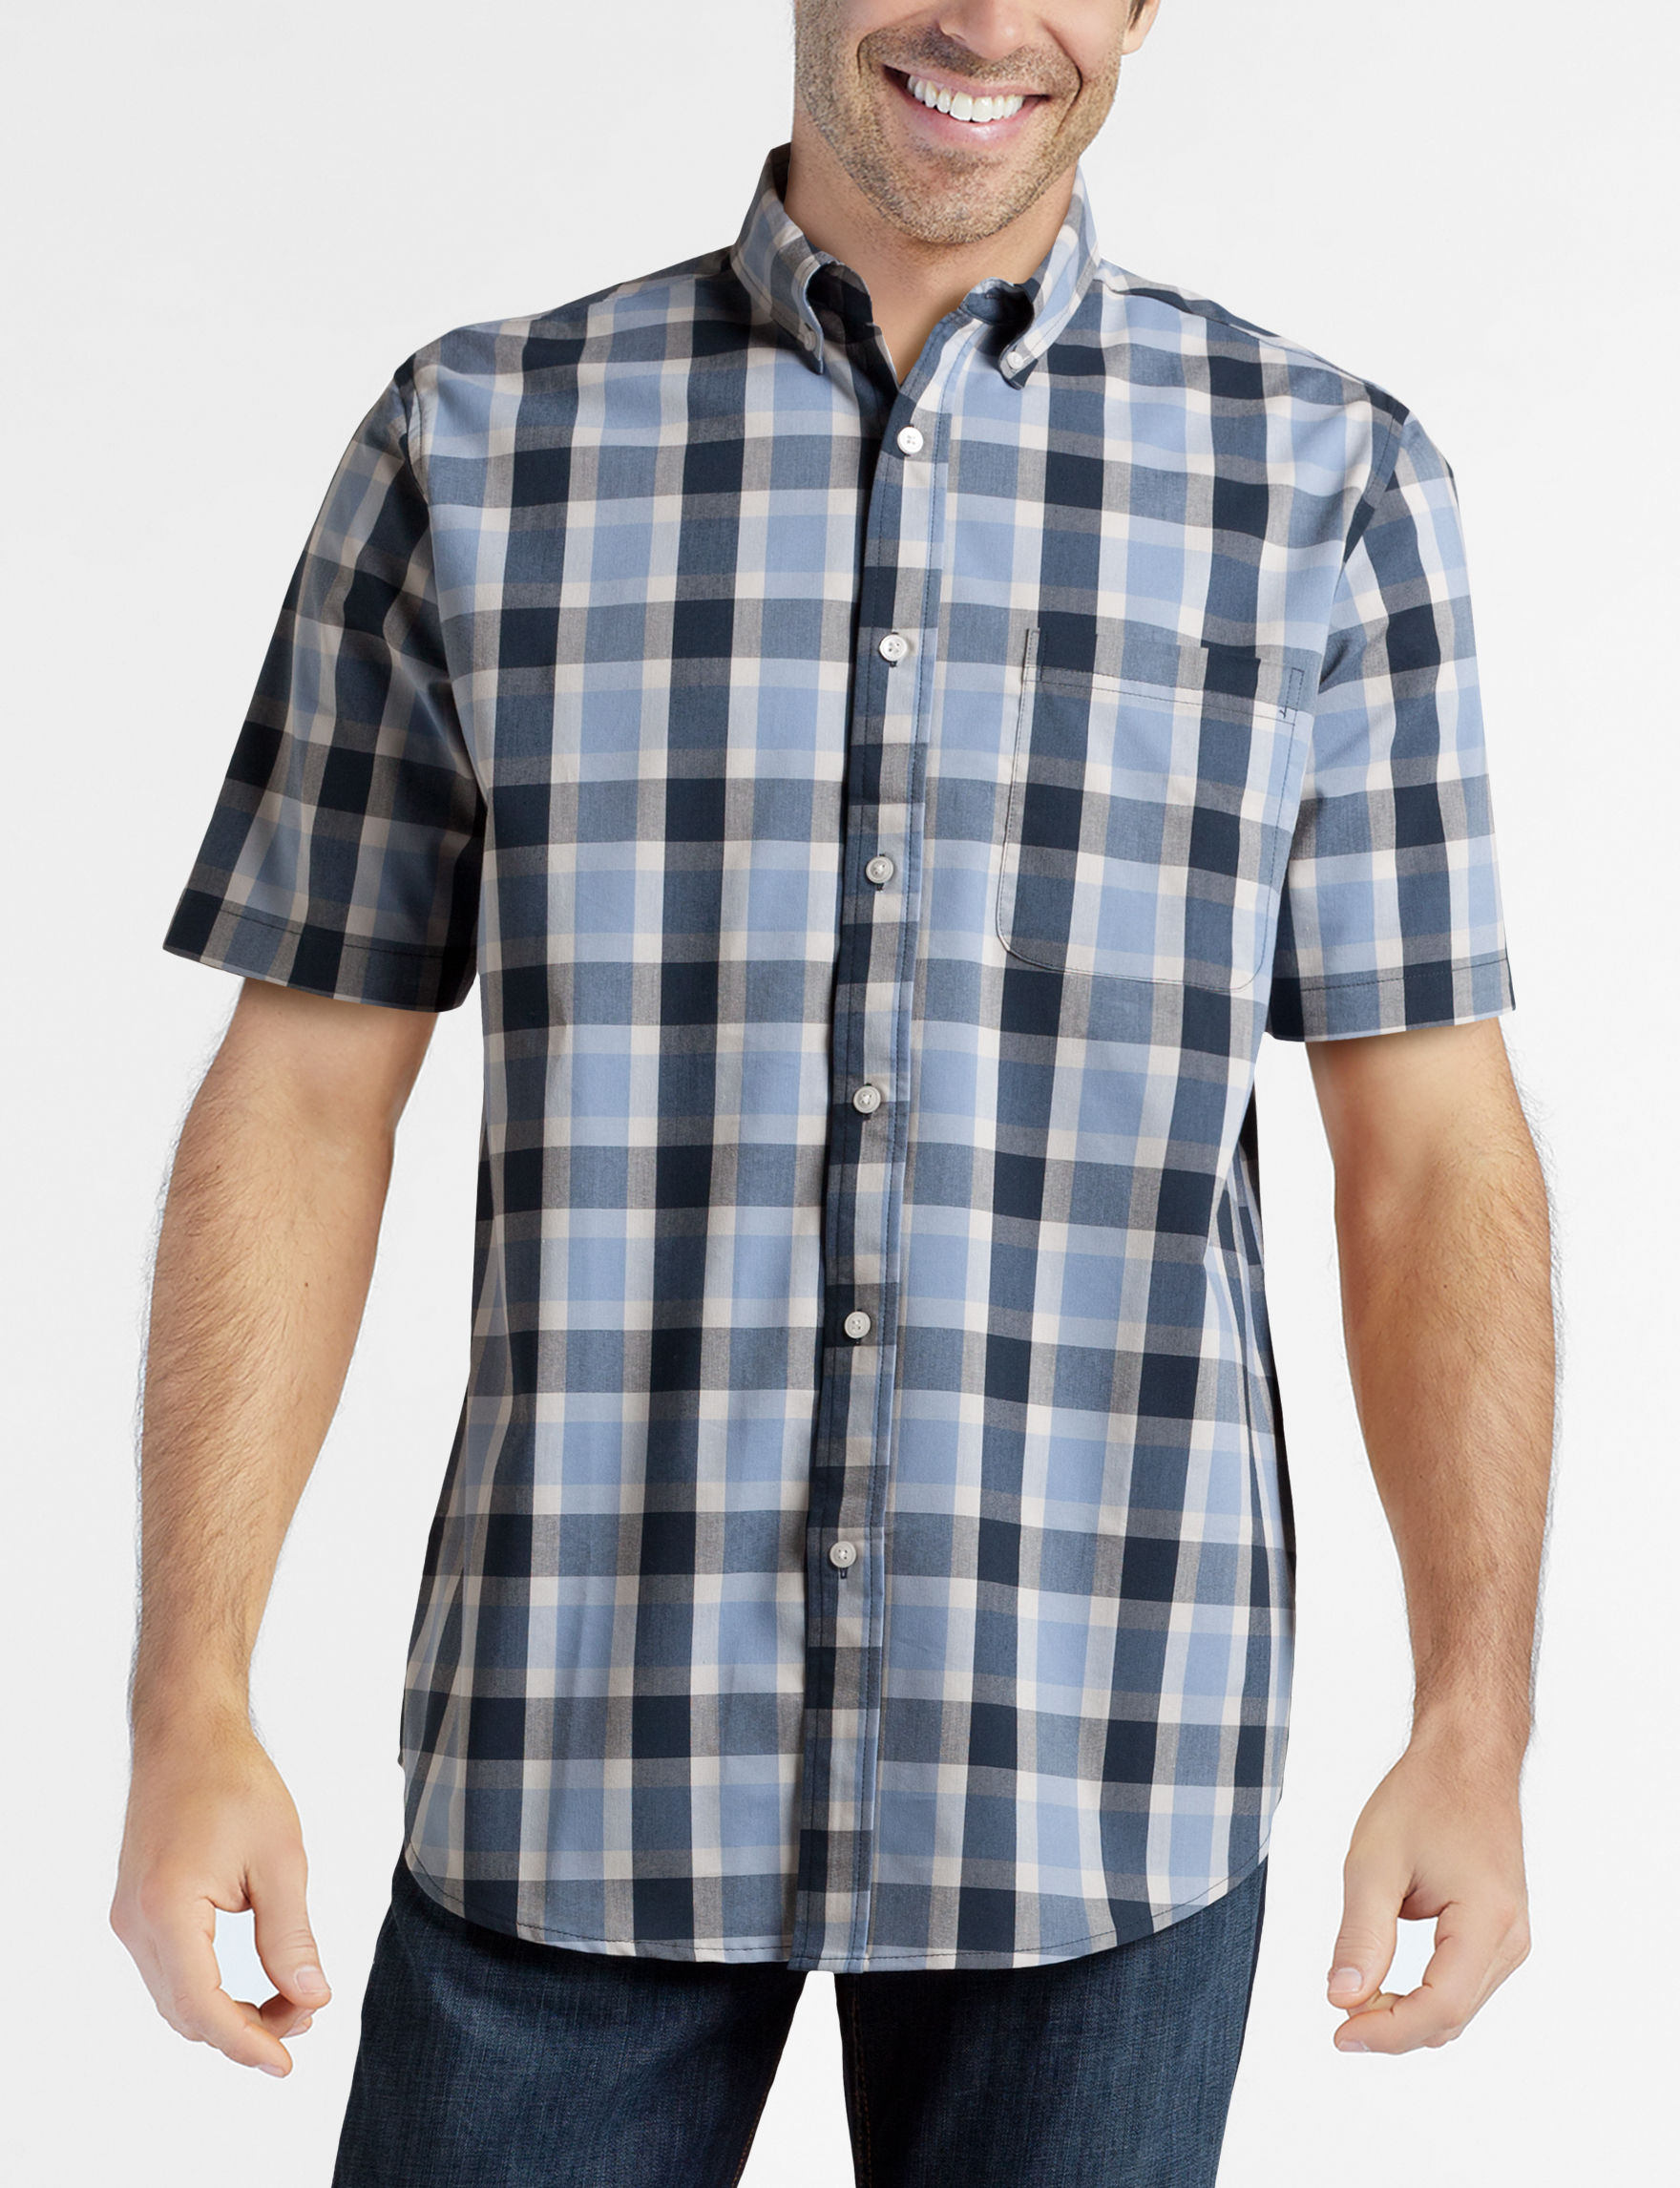 Sun River Indigo Casual Button Down Shirts